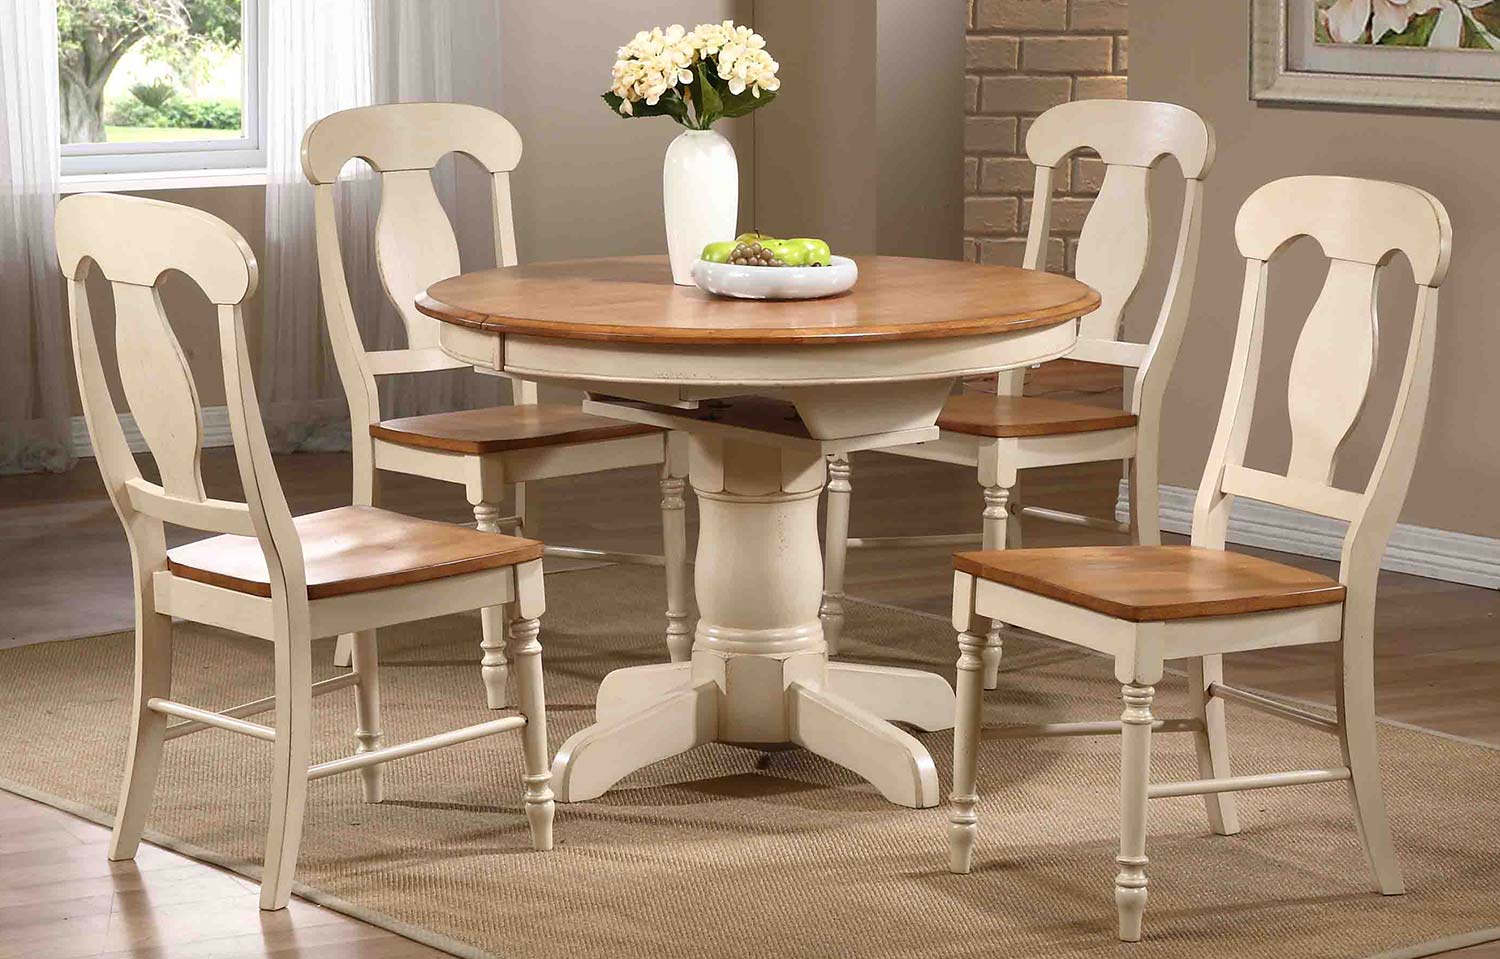 Iconic Furniture Round Oval Pedestal Dining Set With